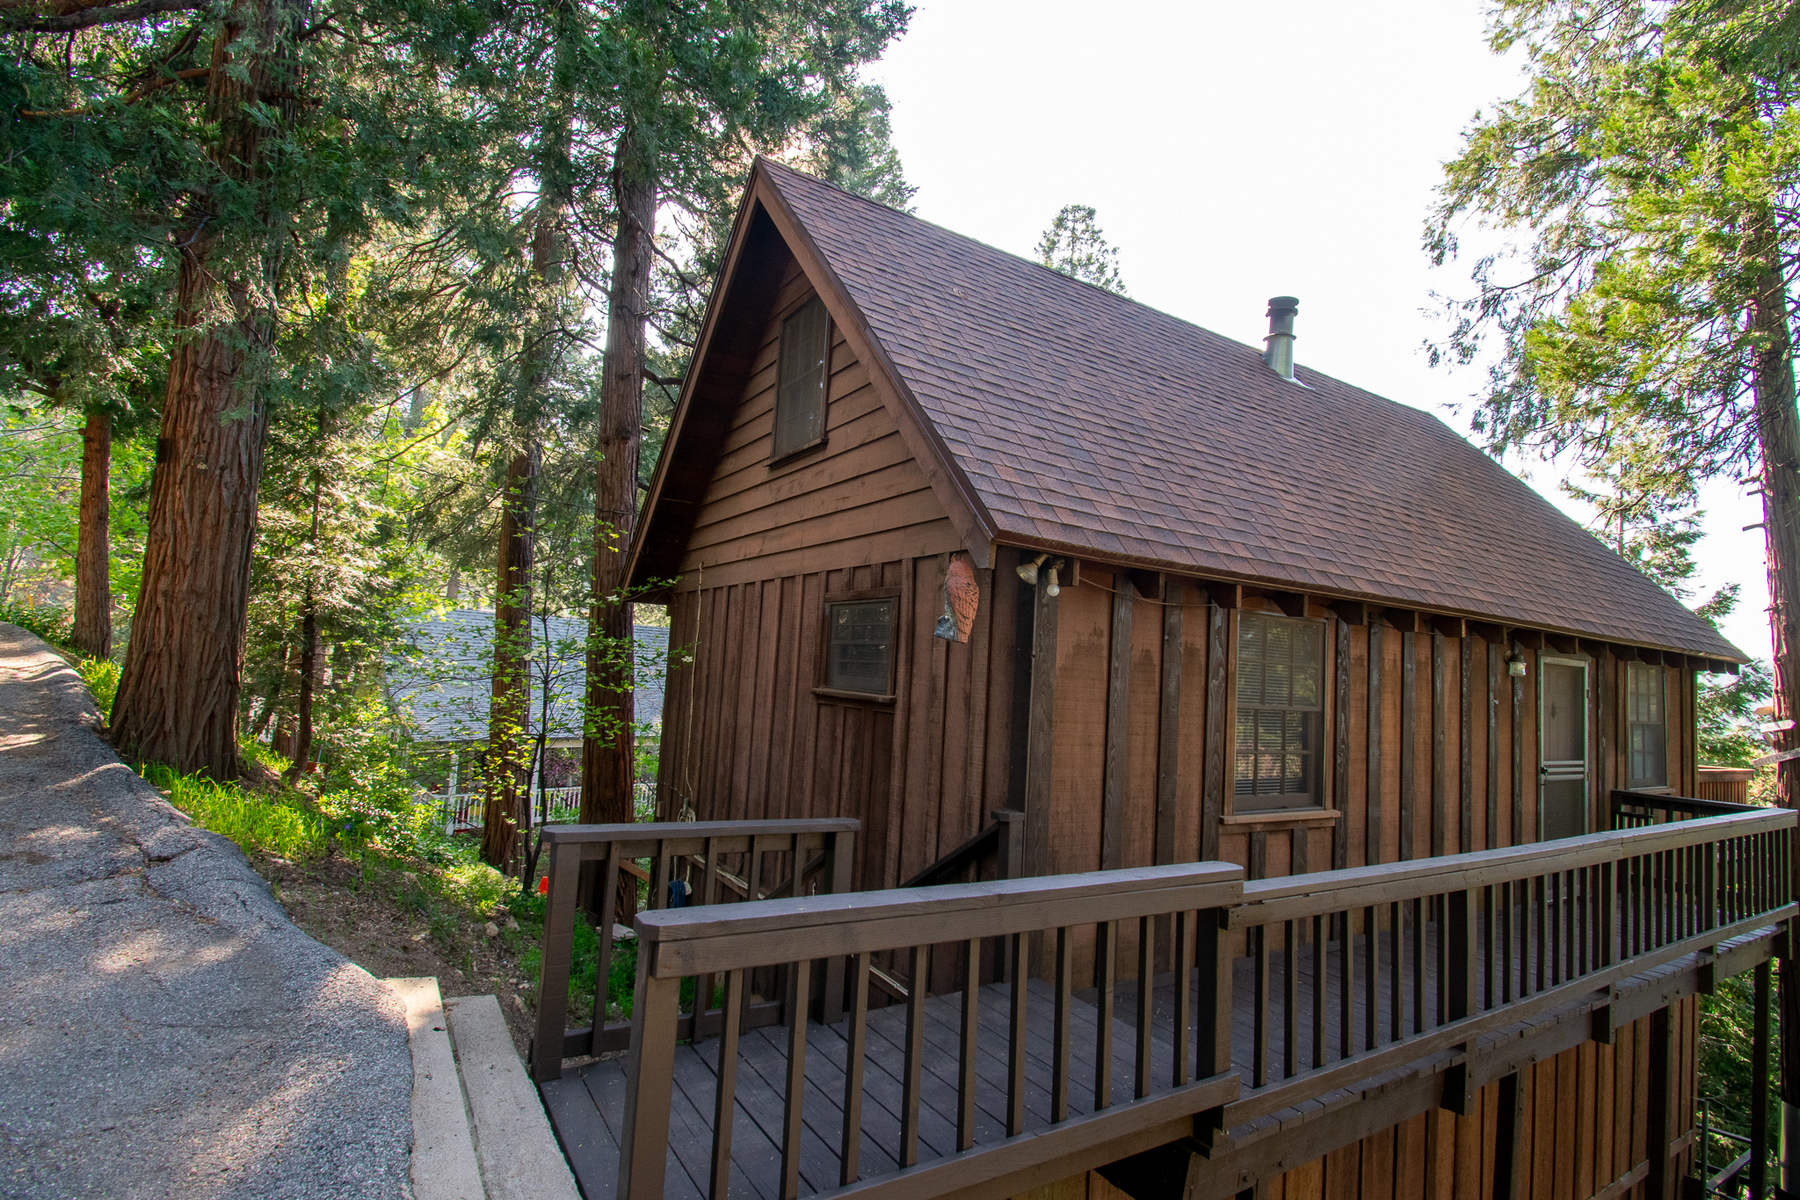 Single Family Homes for Active at 24048 Cresta Drive, Crestline, California 92325 24048 Cresta Drive Crestline, California 92325 United States